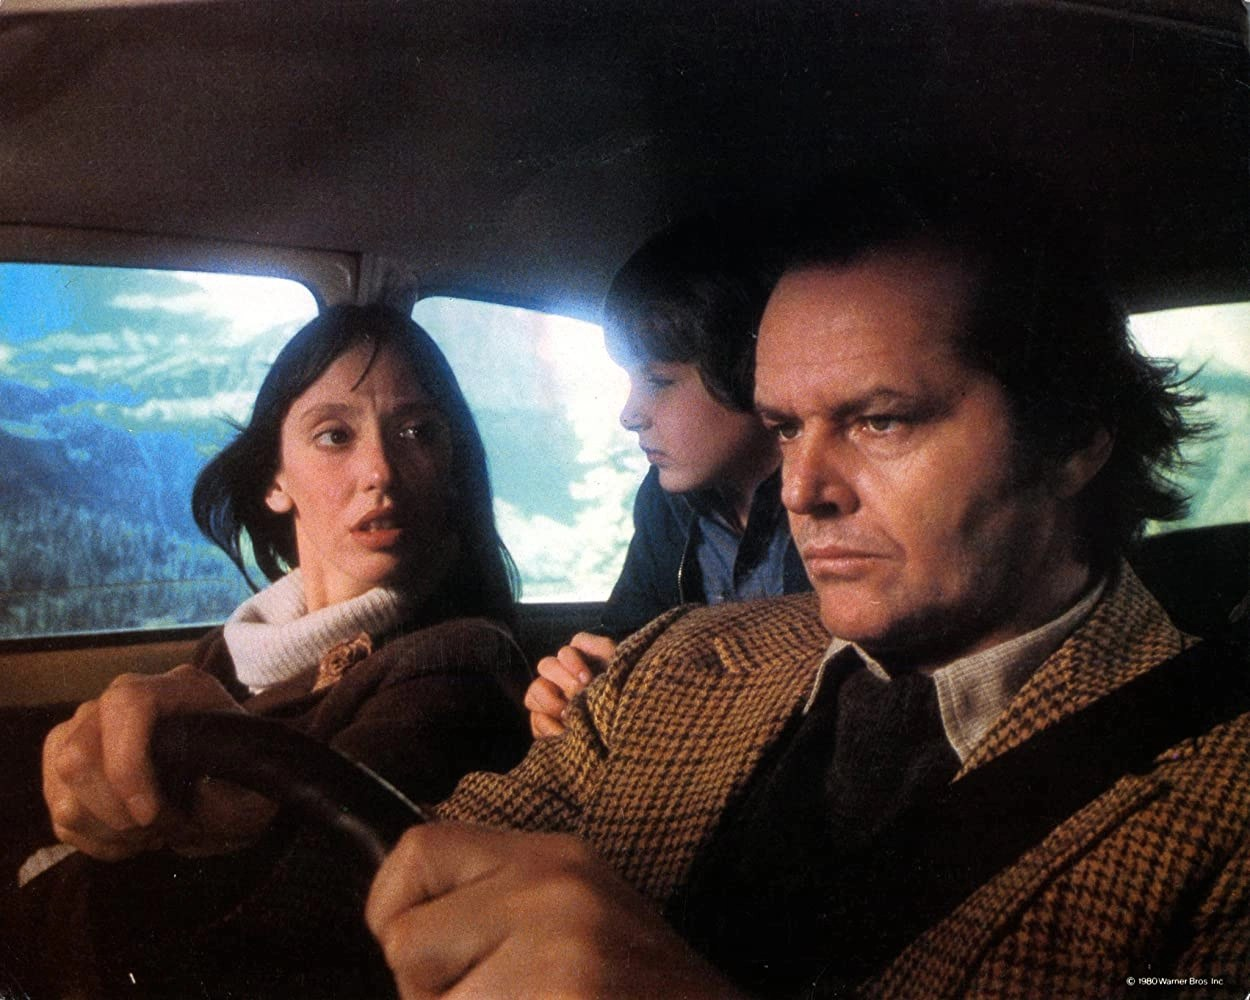 Jack Nicholson, Shelley Duvall, e Danny Lloyd in The Shining